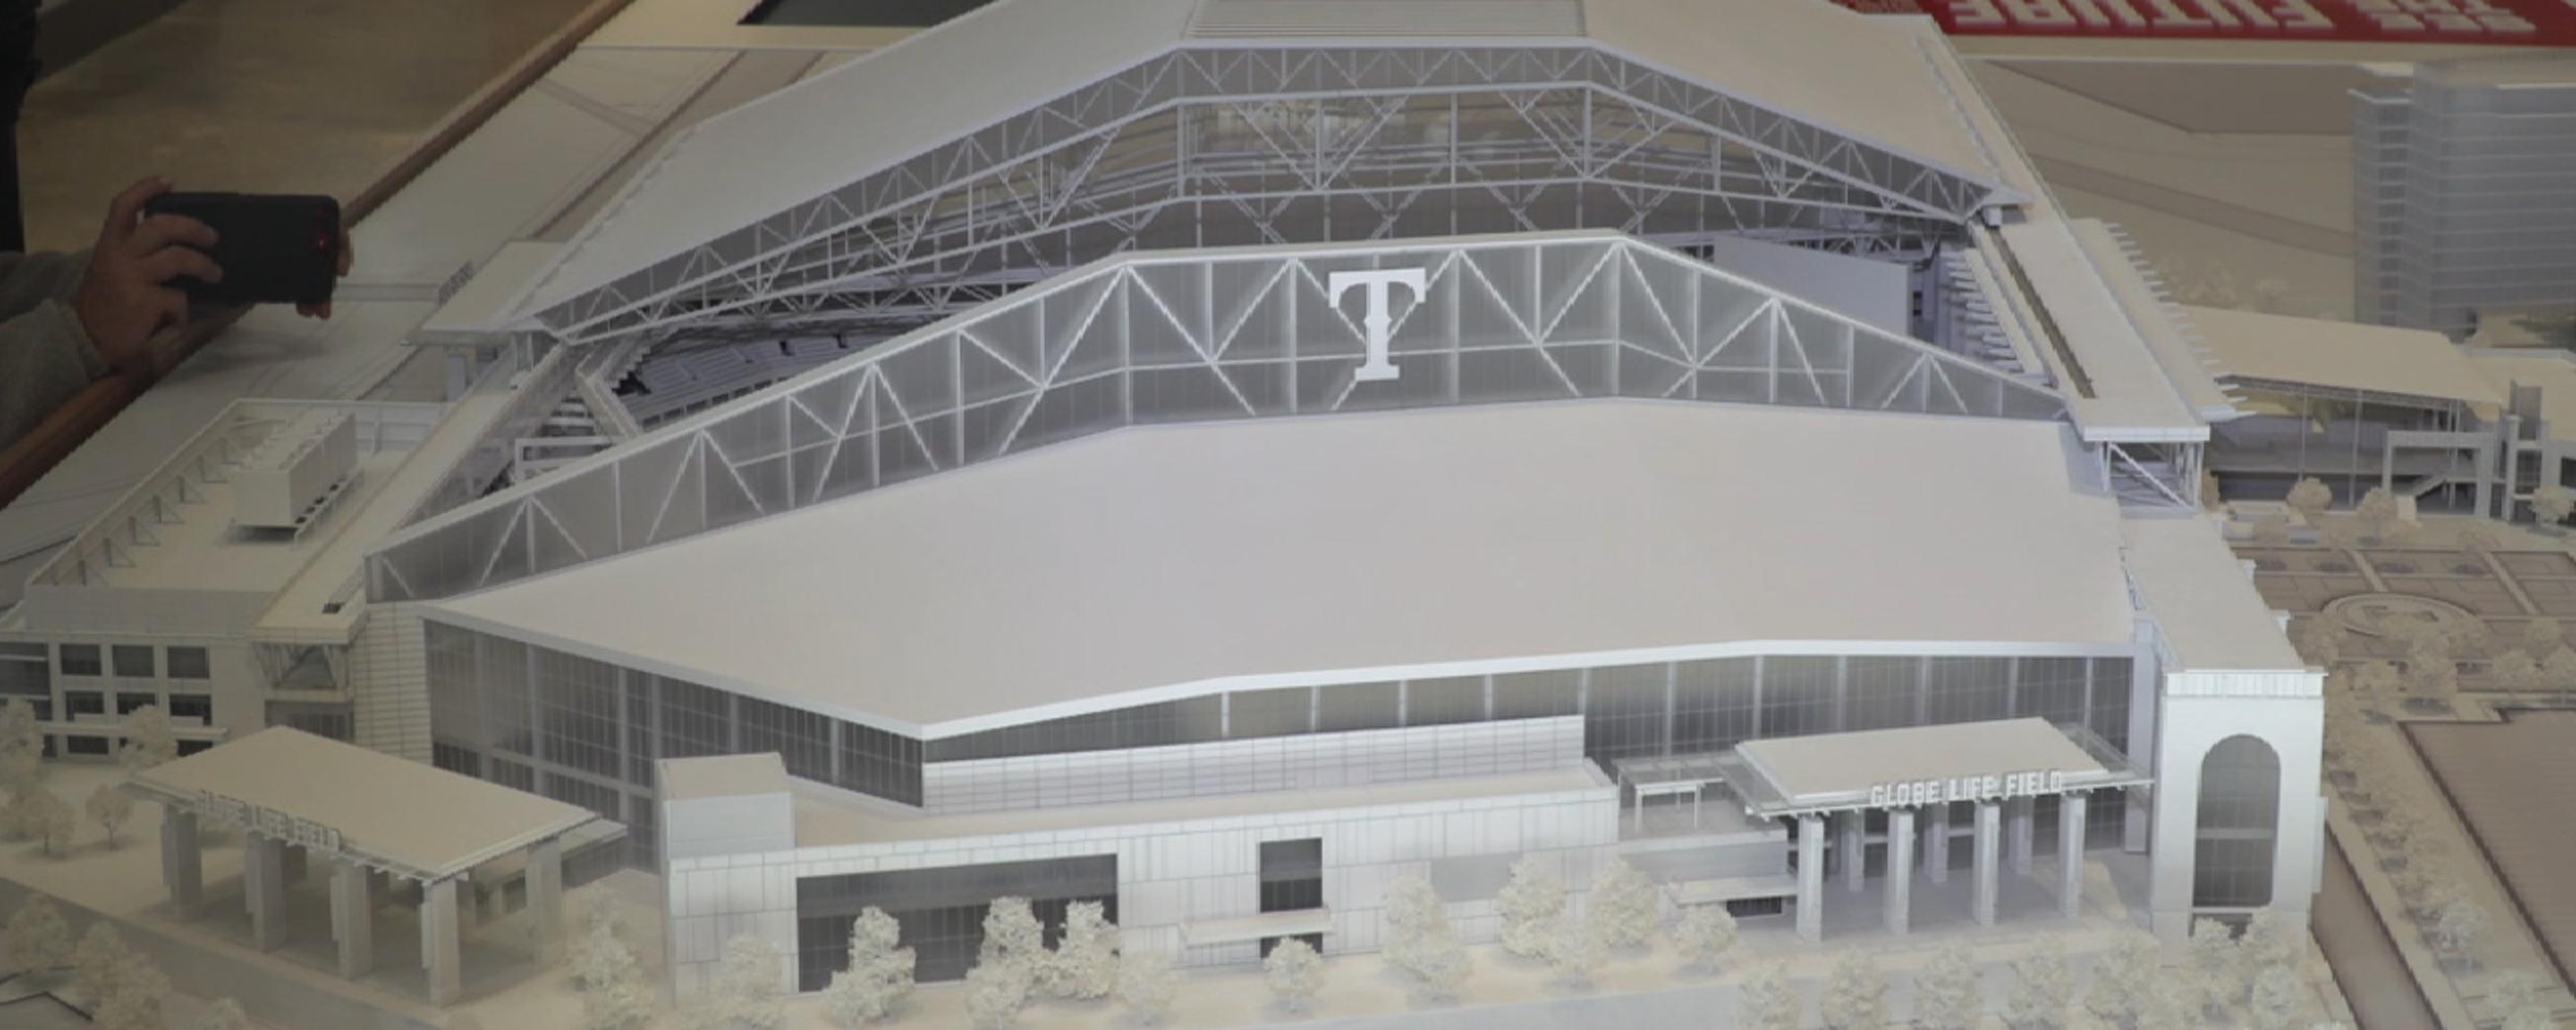 Rangers unveil new stadium model  9ee3d570e8d9